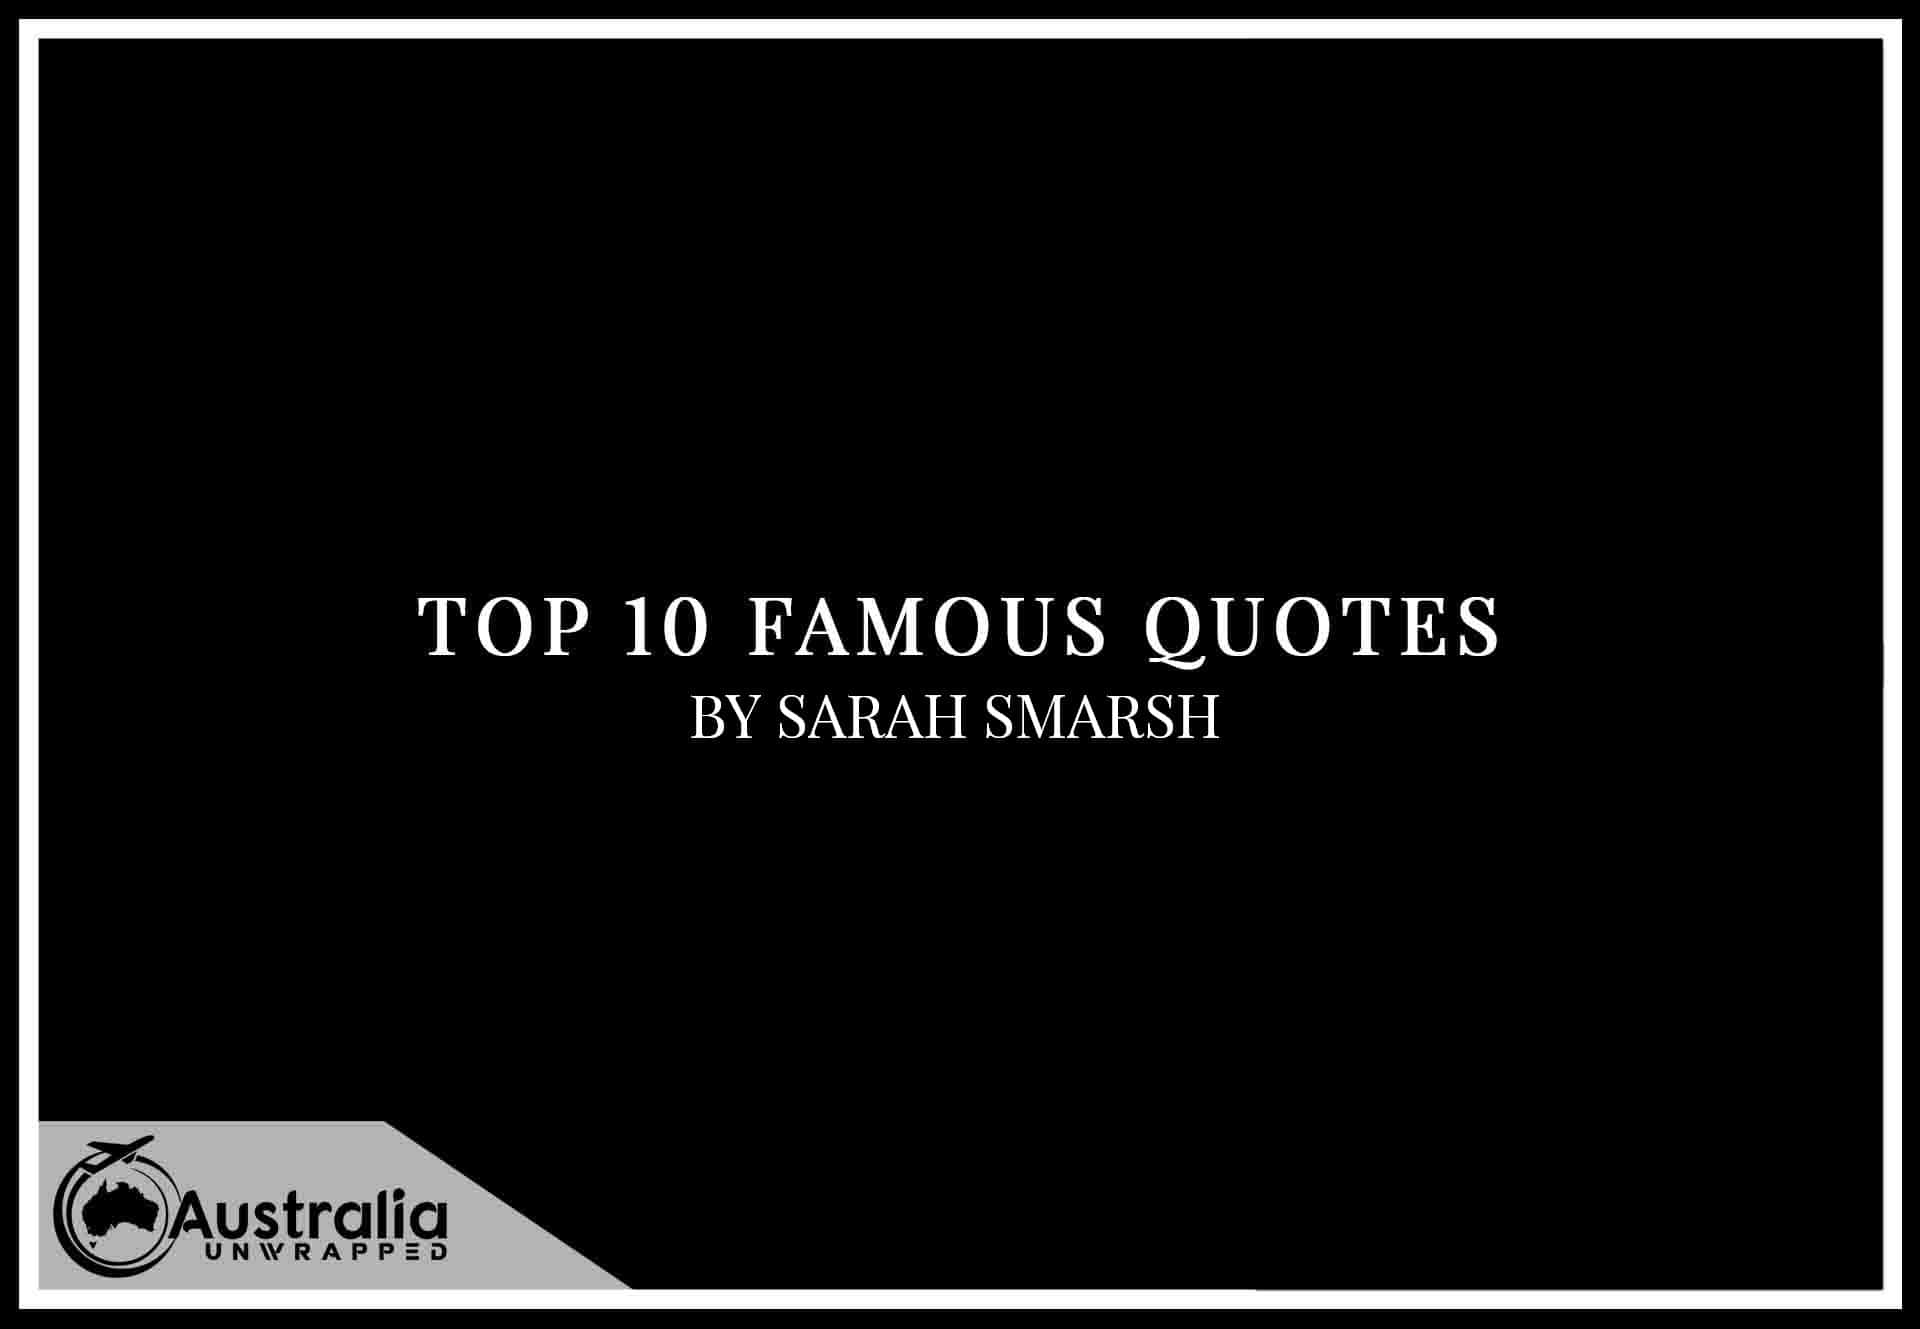 Top 10 Famous Quotes by Author Sarah Smarsh